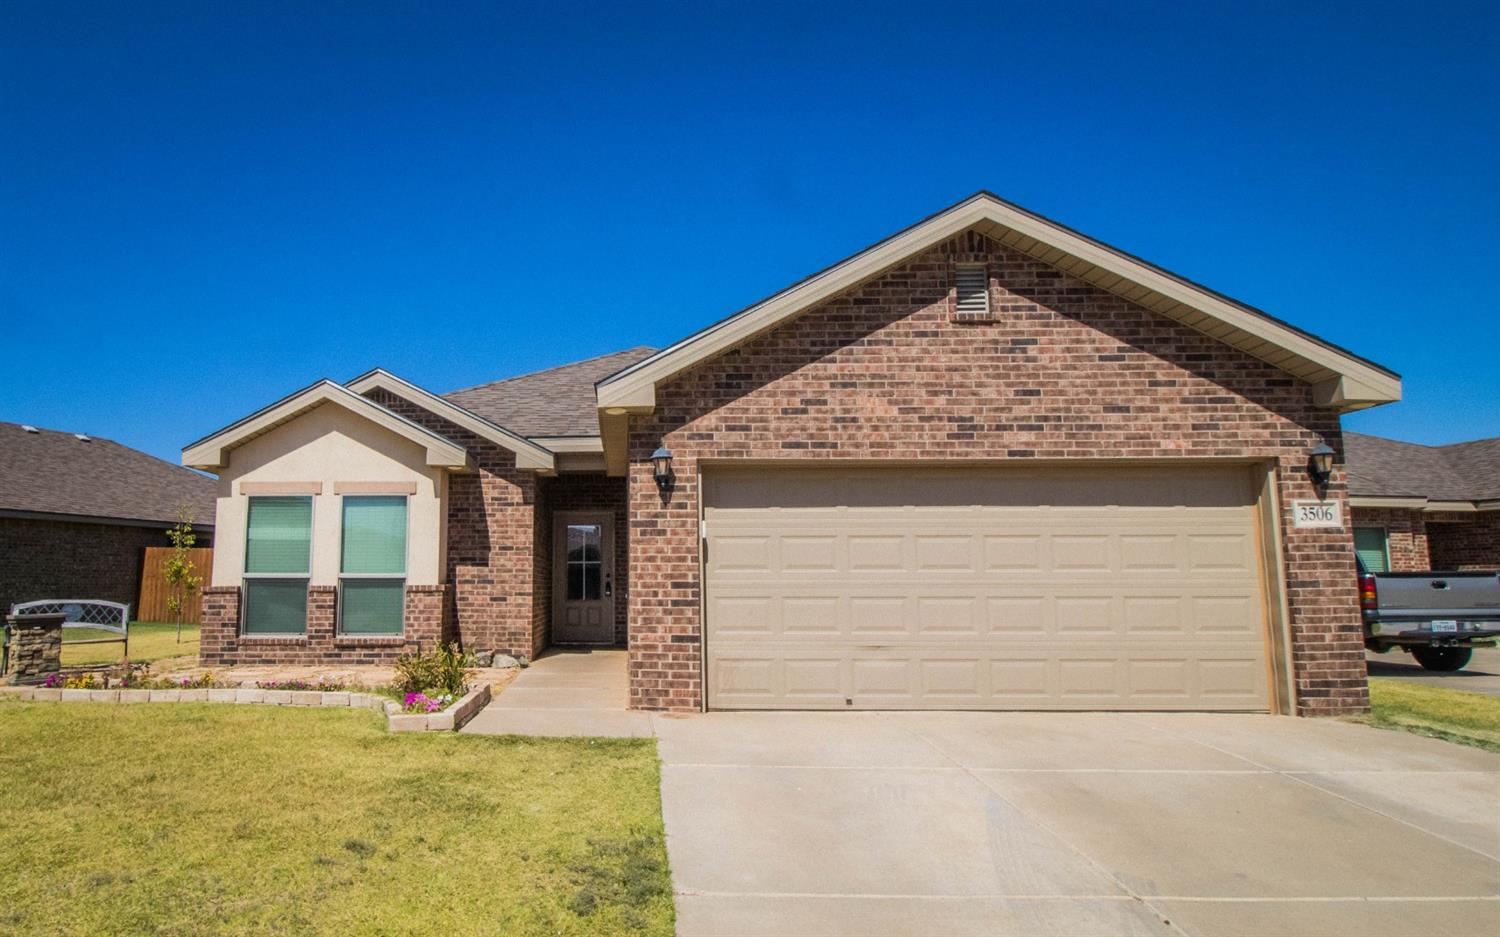 3506 Rochester Avenue, Lubbock in Lubbock County, TX 79407 Home for Sale